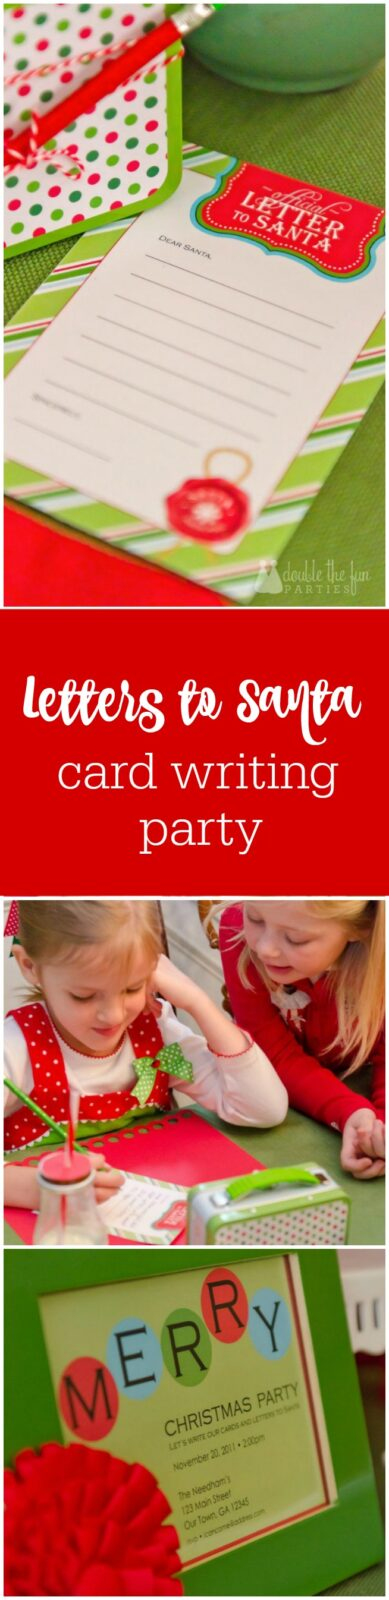 Letters to Santa Christmas card writing party by The Party Teacher